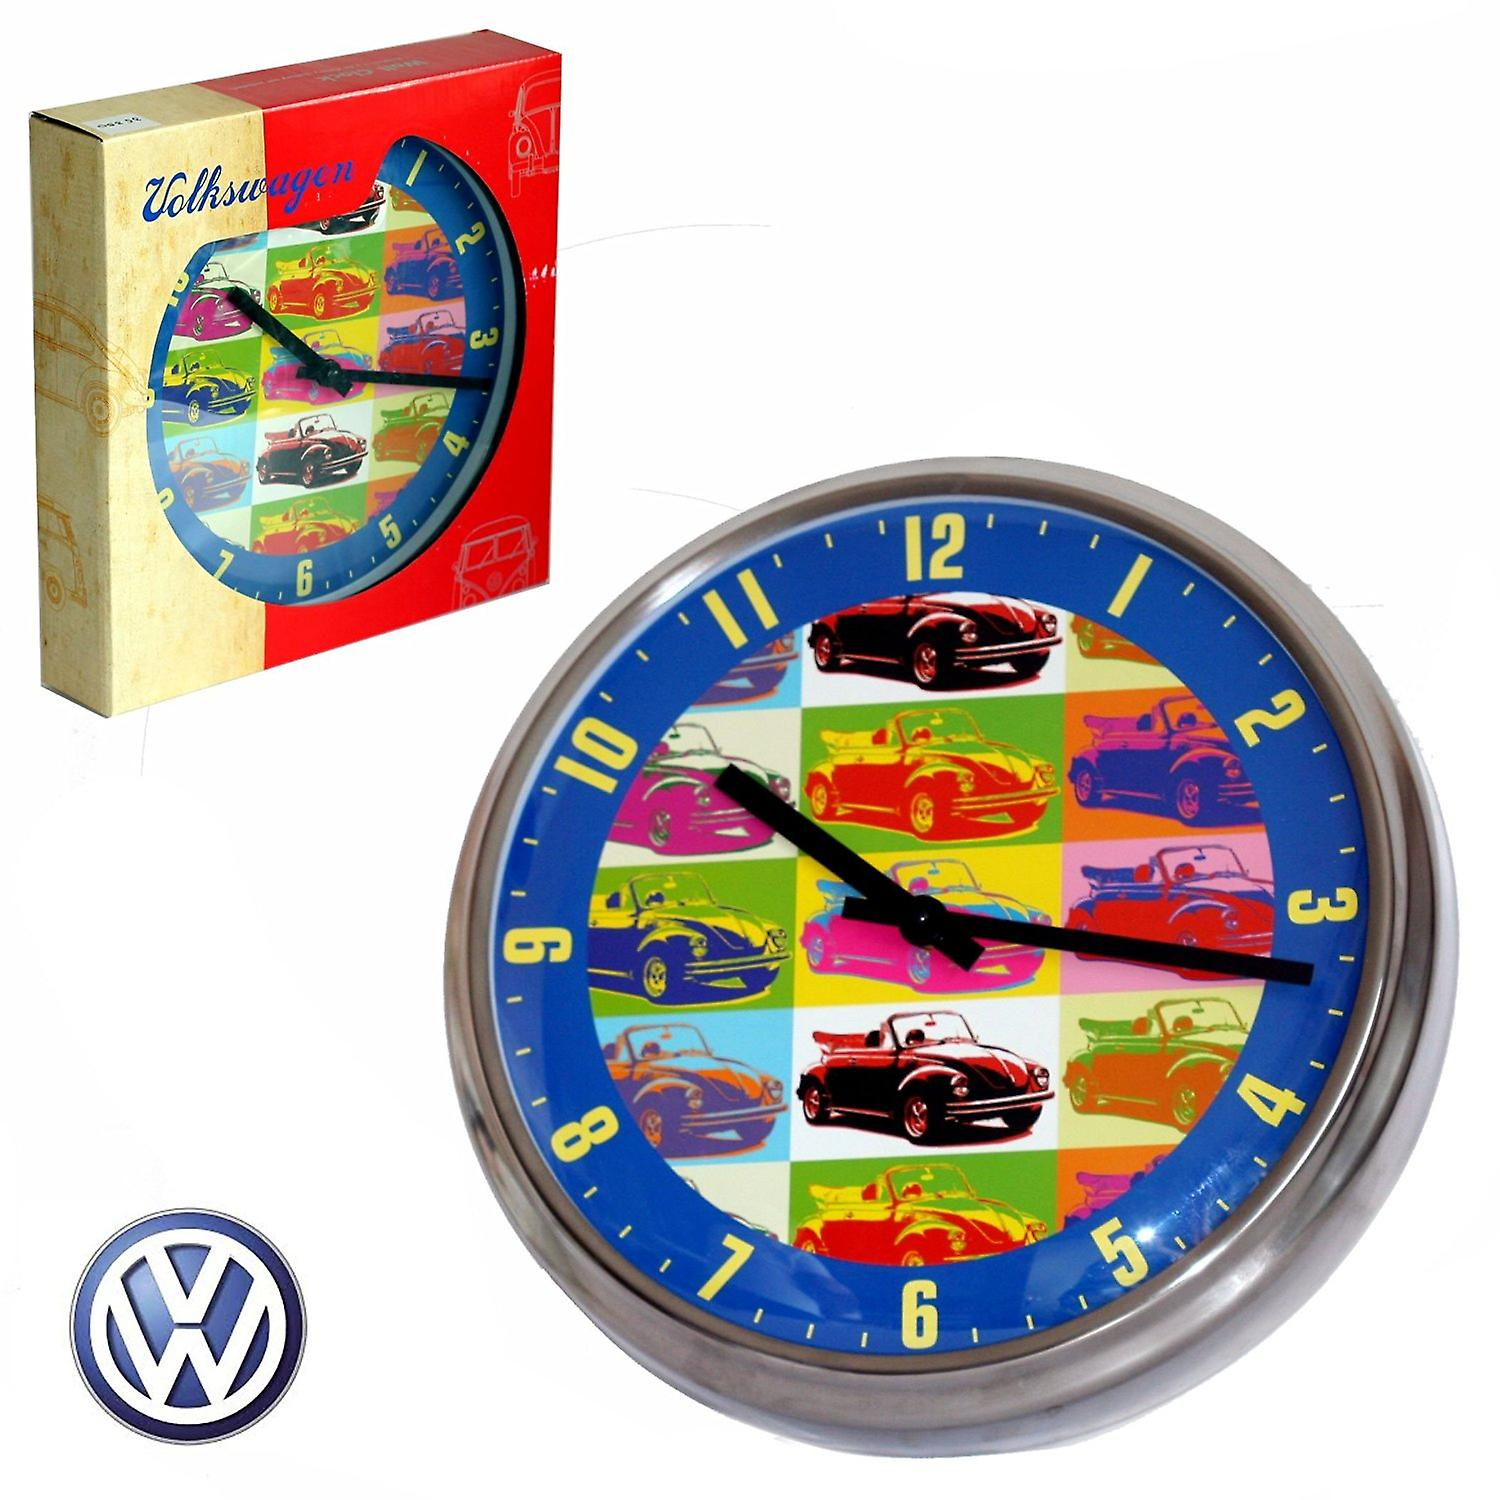 Official Classic VW Beetle Car Large Wall Clock